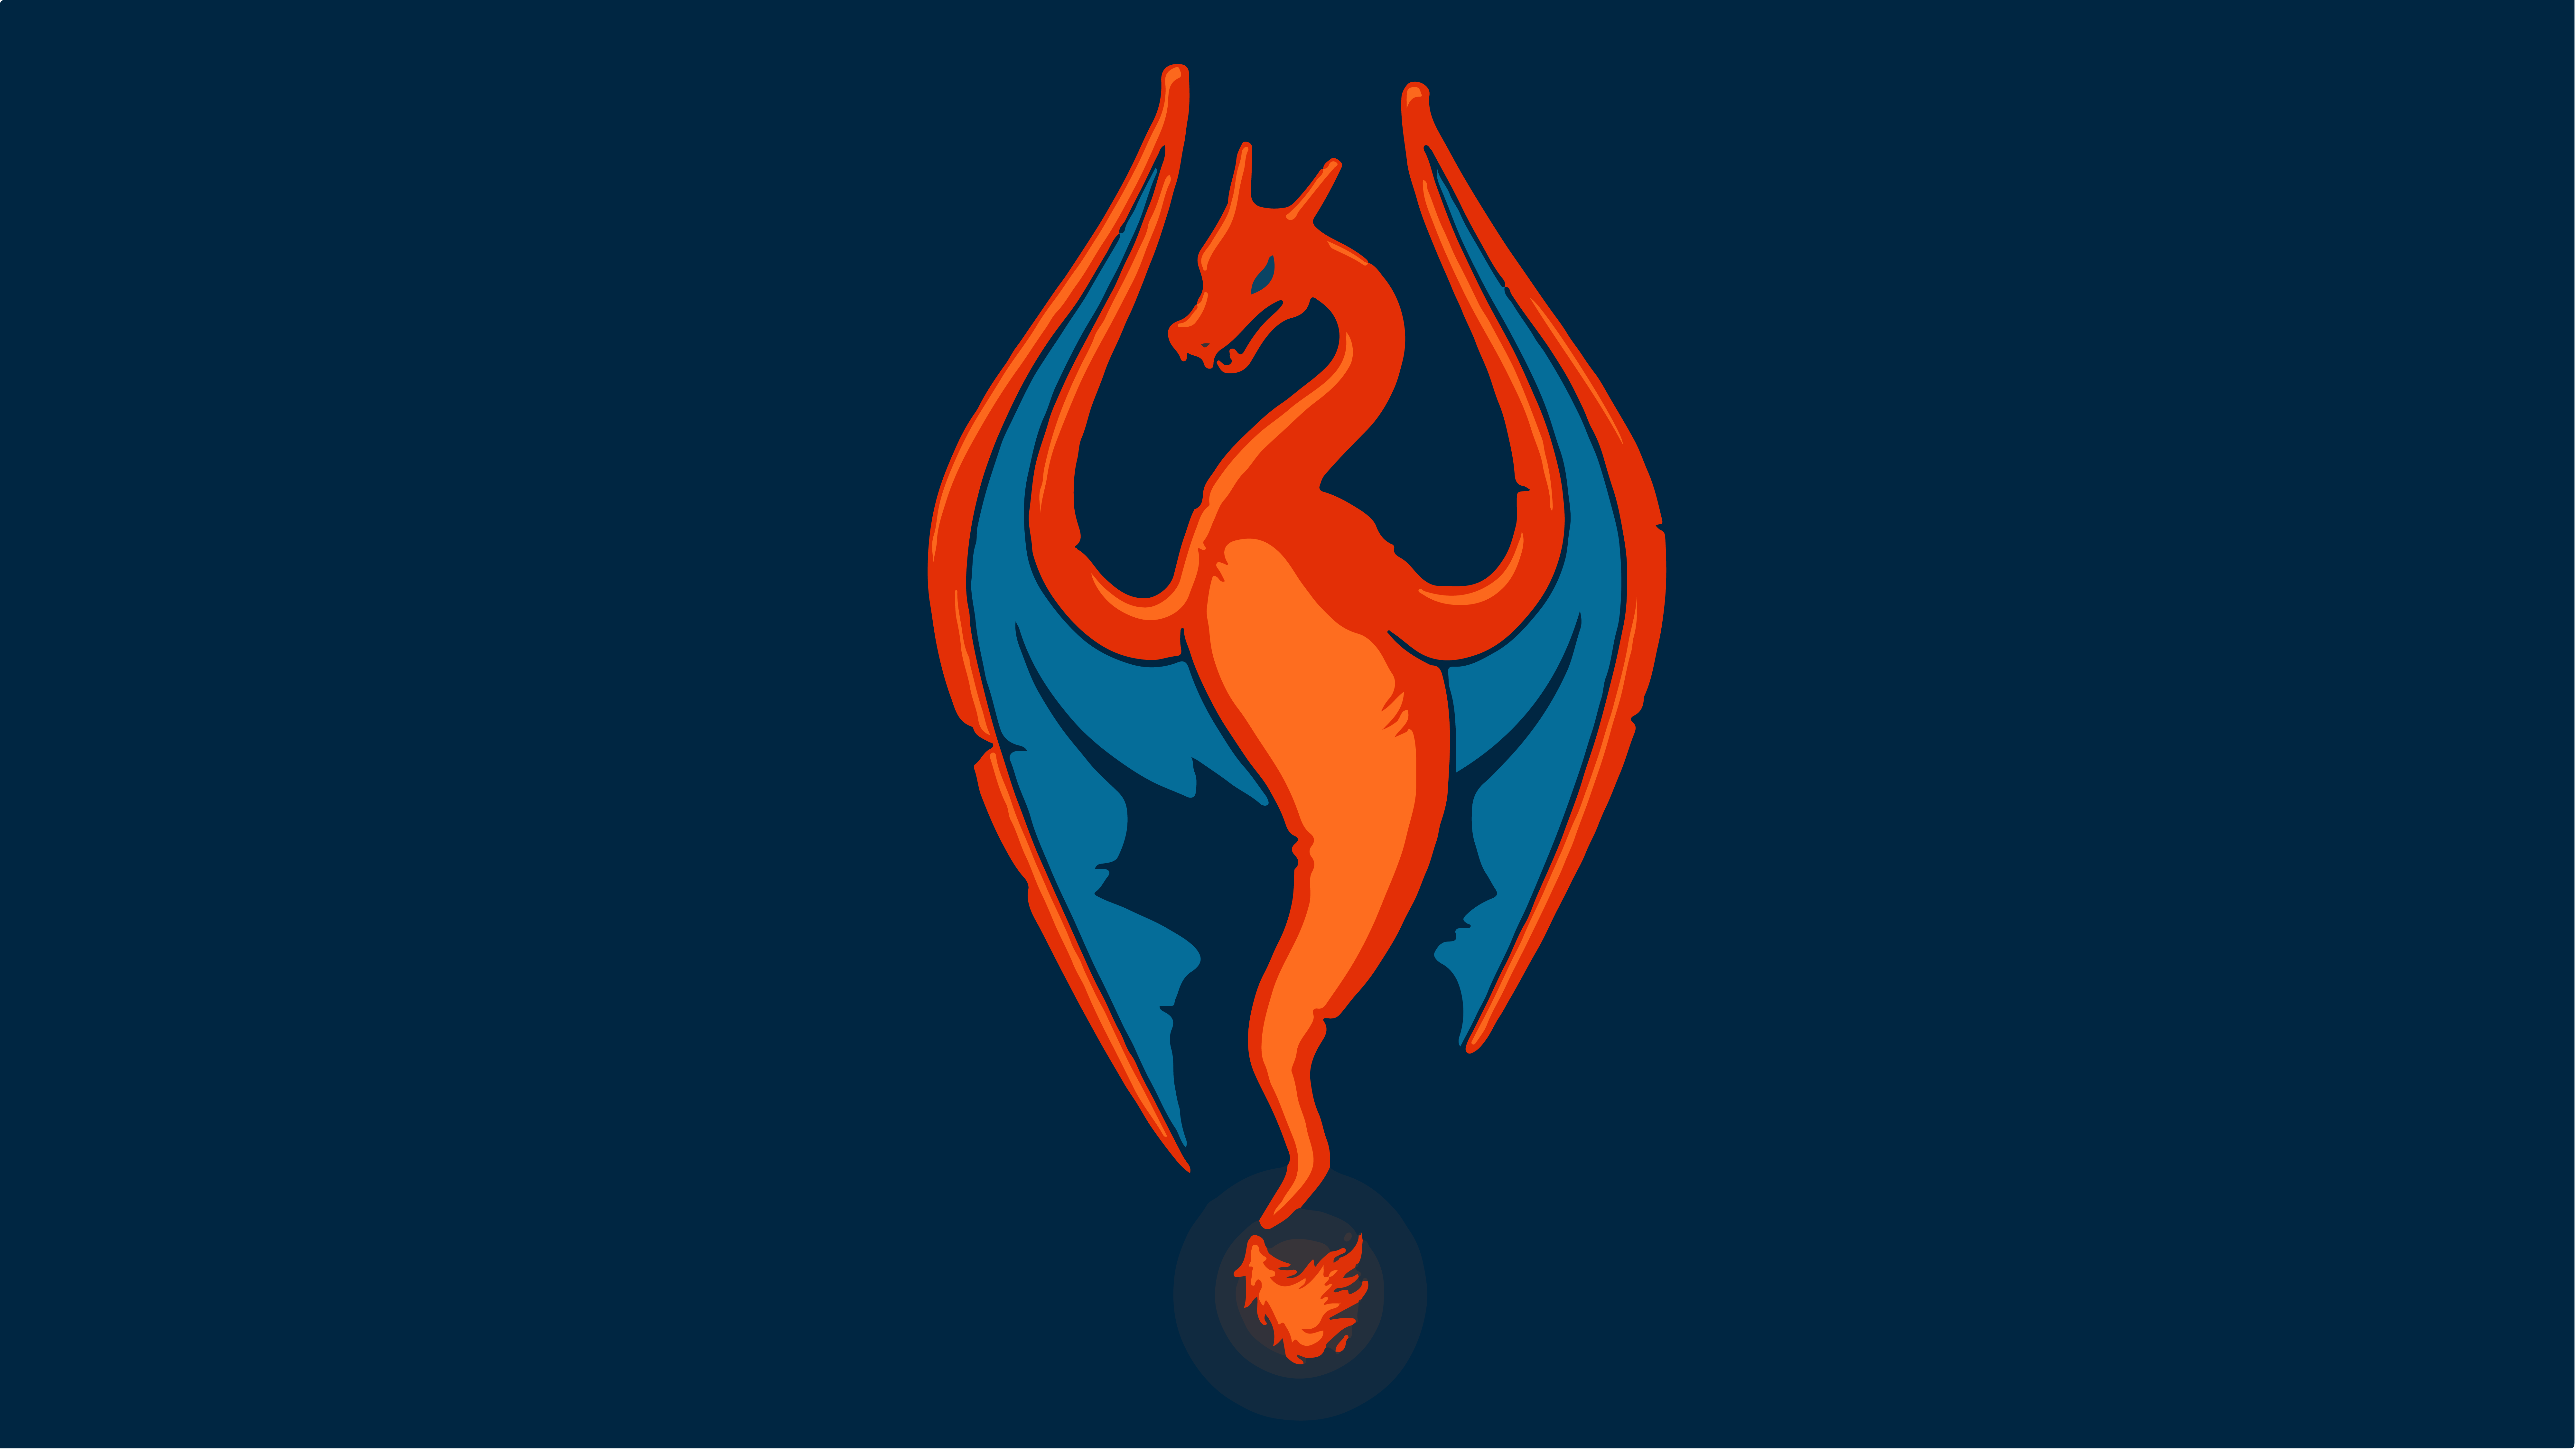 Charizard 8k Ultra HD Wallpaper And Background Image